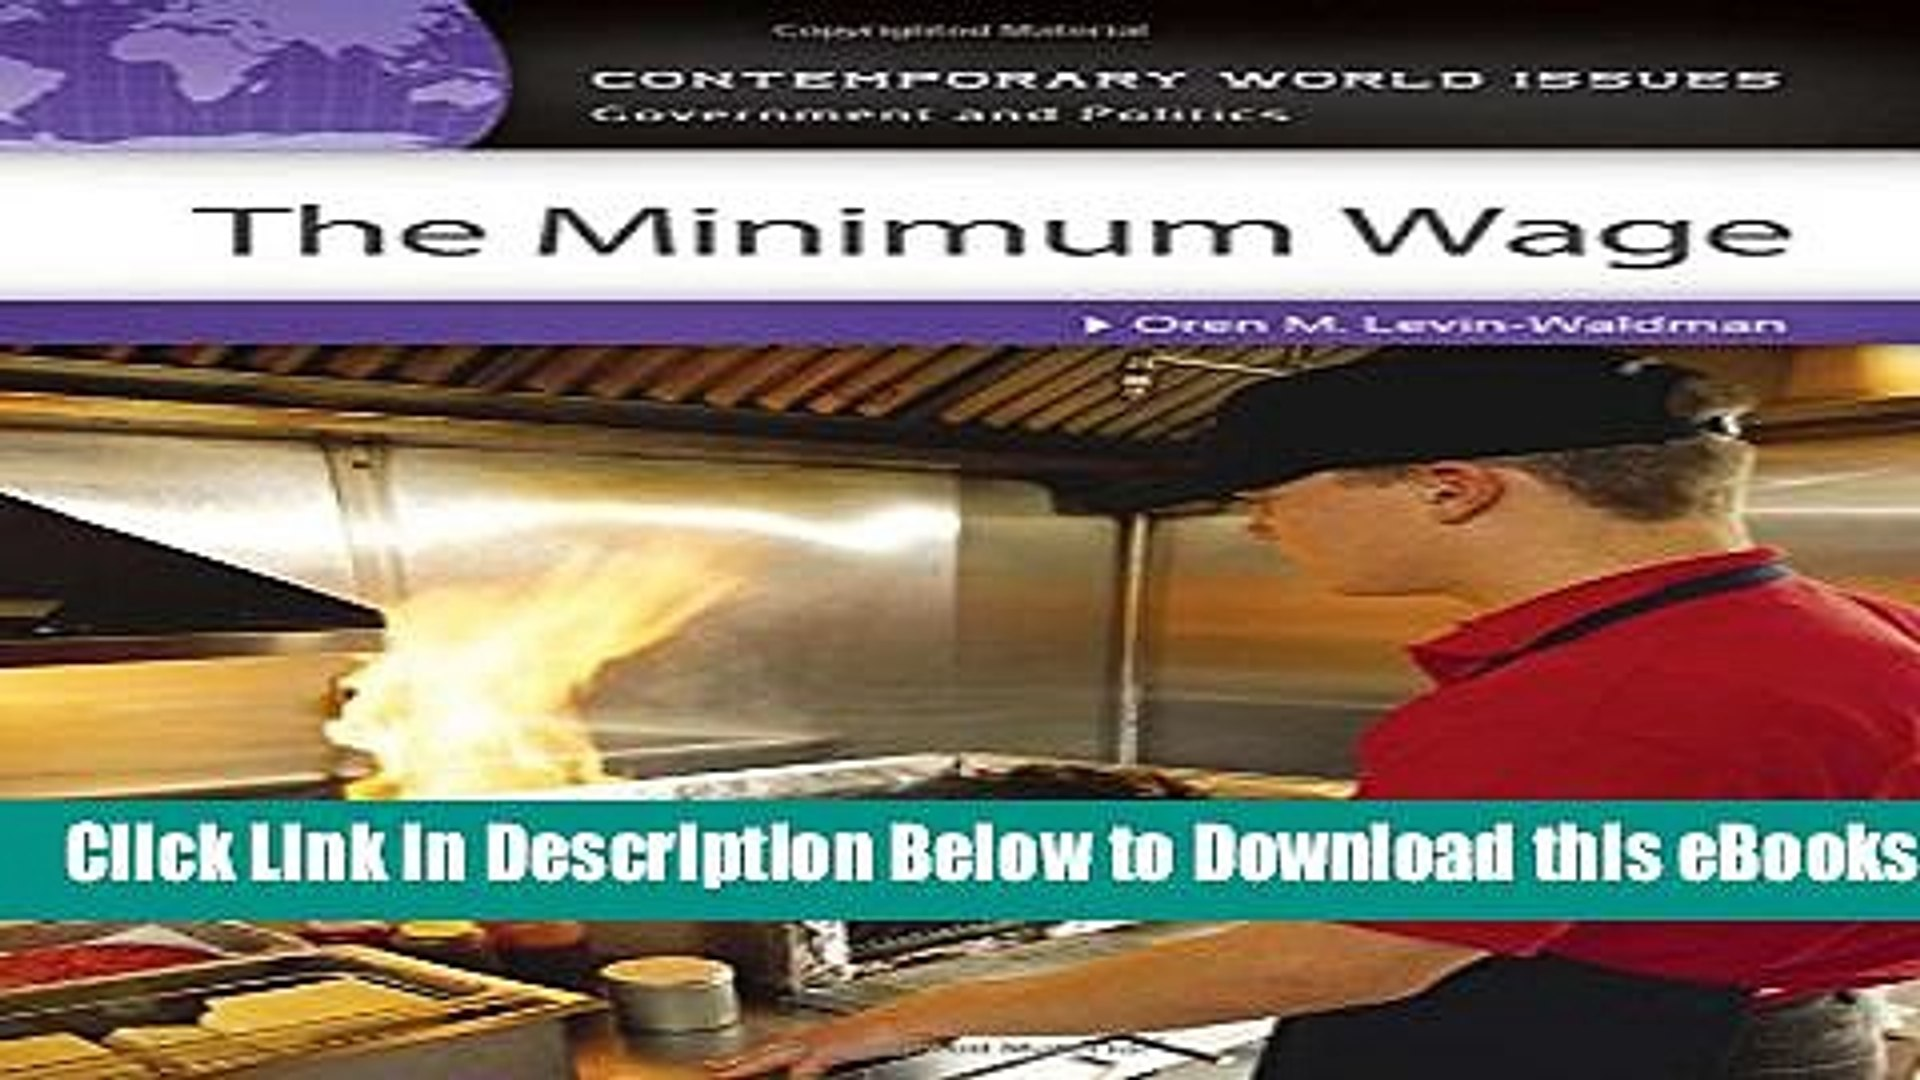 [Reads] The Minimum Wage: A Reference Handbook (Contemporary World Issues) Online Ebook